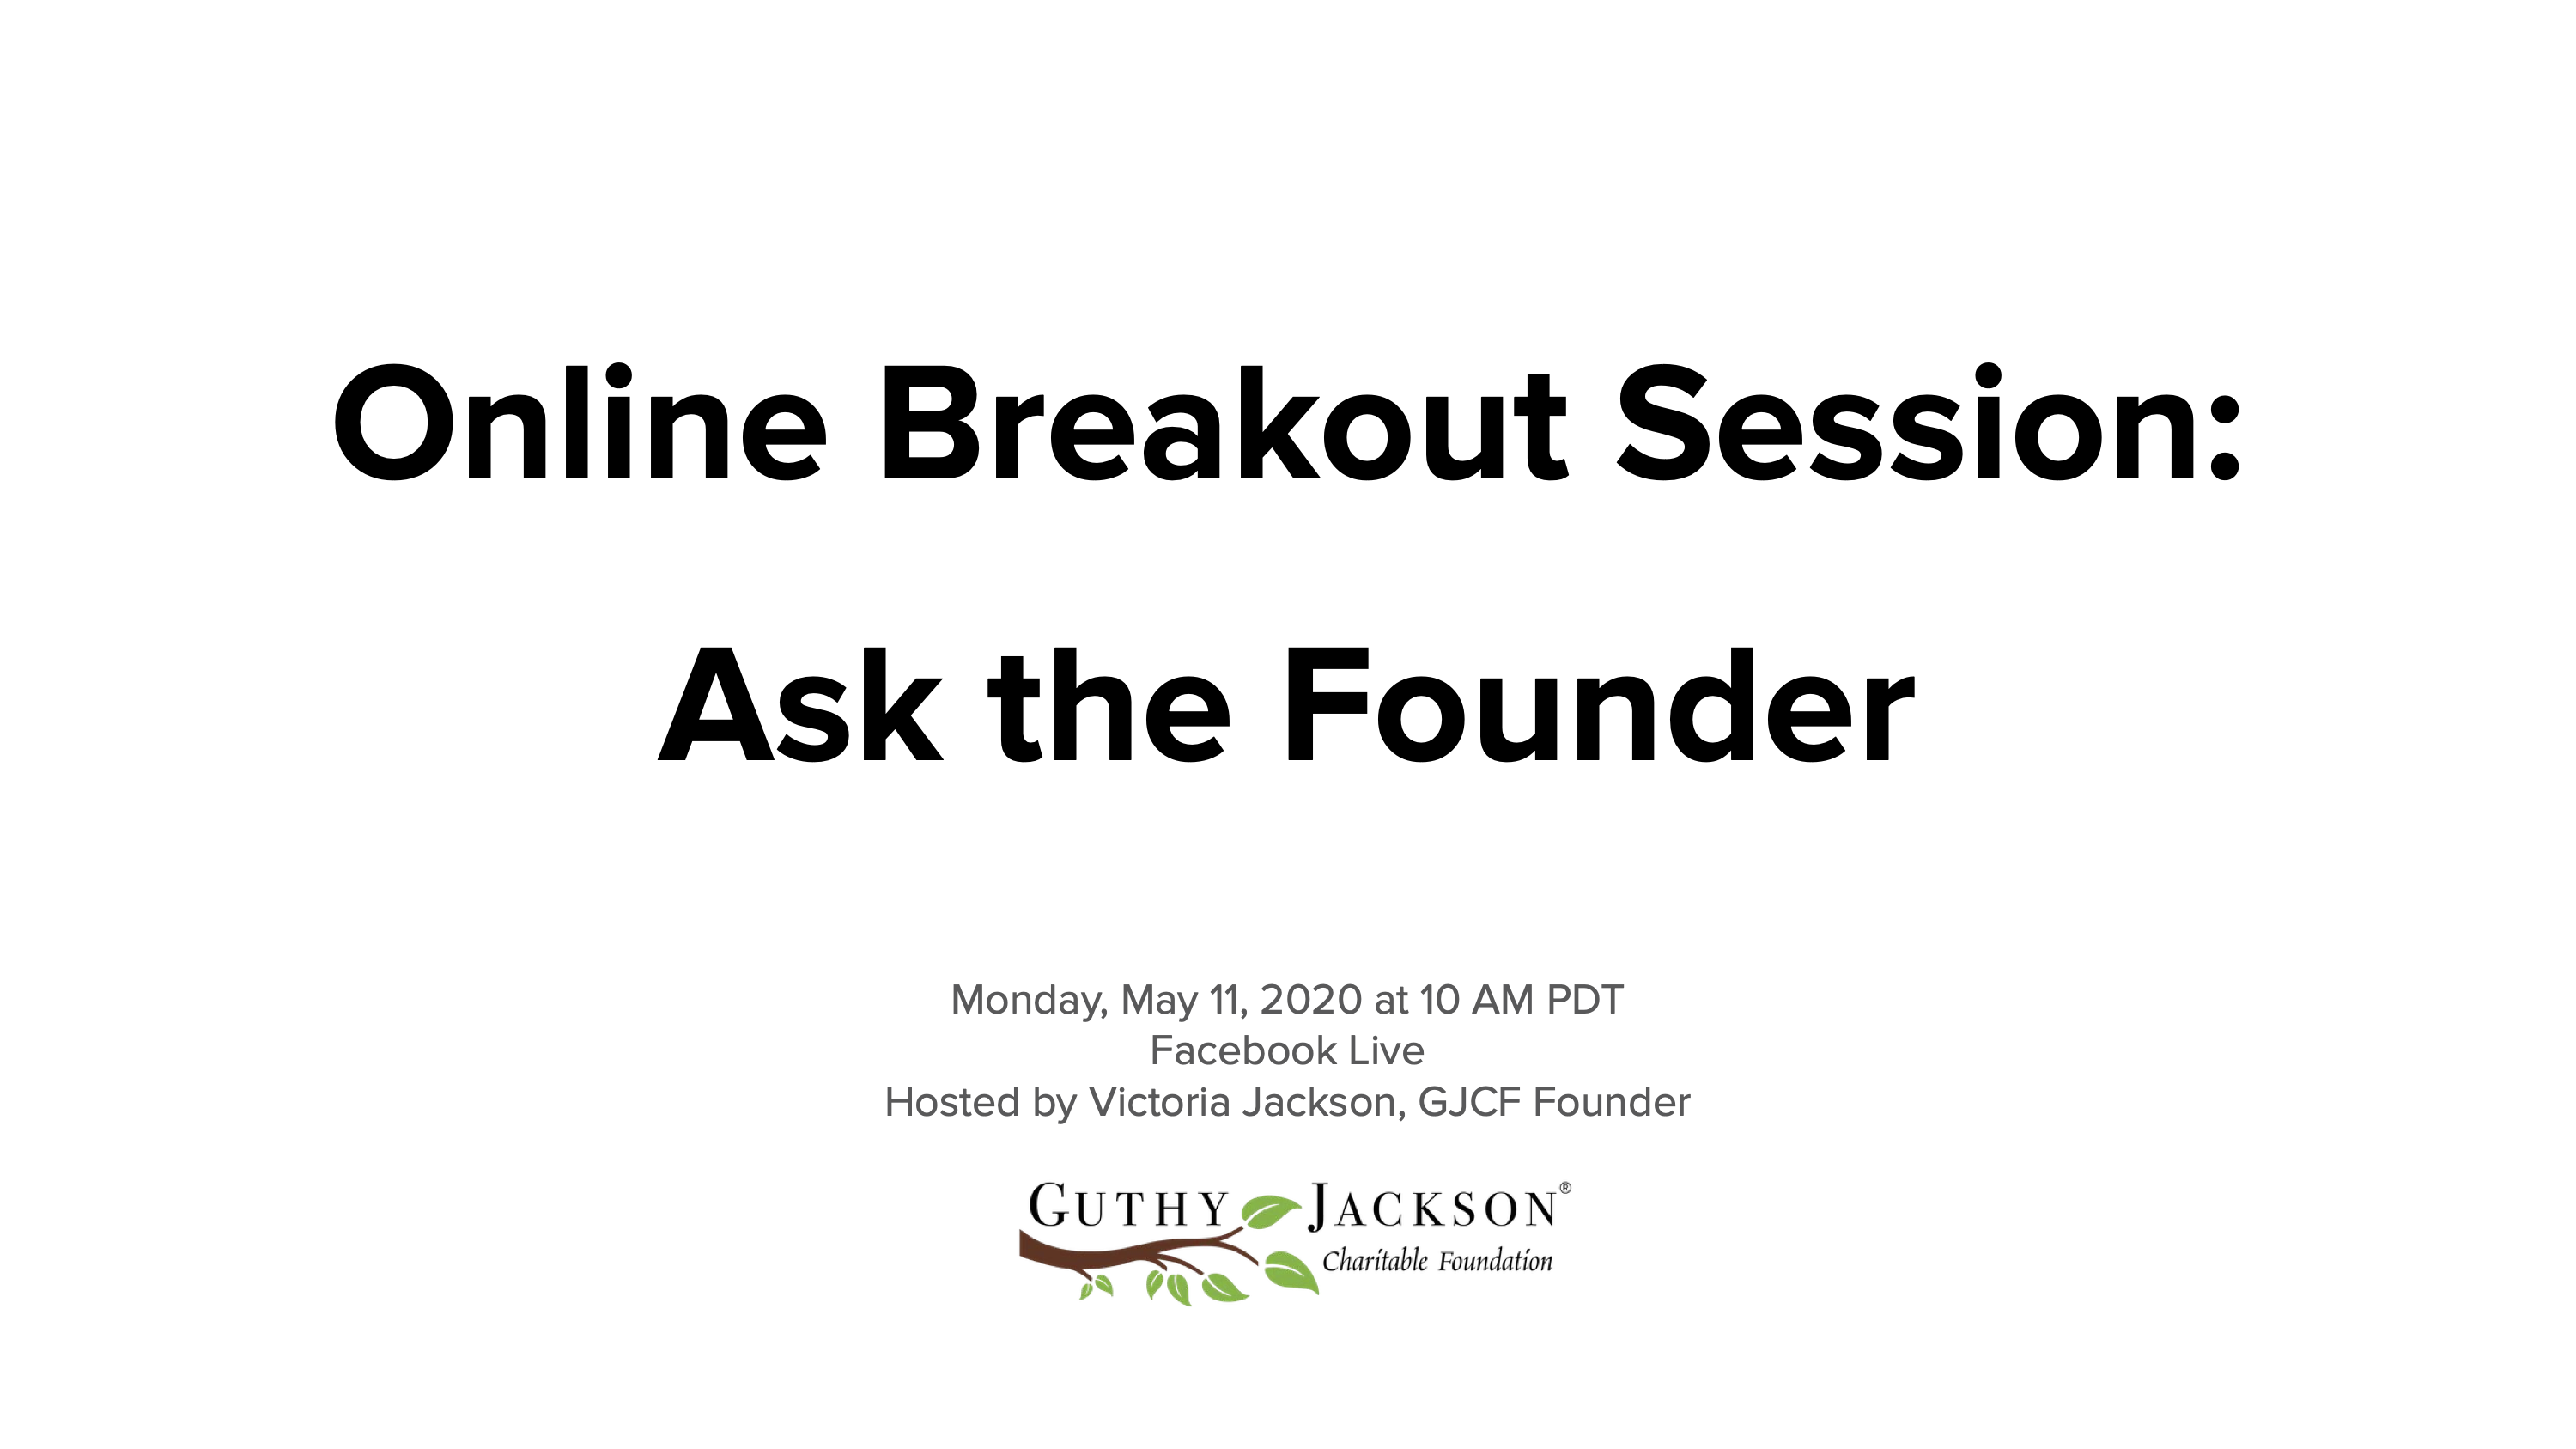 <a href='https://guthyjacksonfoundation.org/videos/online-breakout-session-ask-the-founder/' title='Online Breakout Session: Ask the Founder'>Online Breakout Session: Ask the Founder</a>